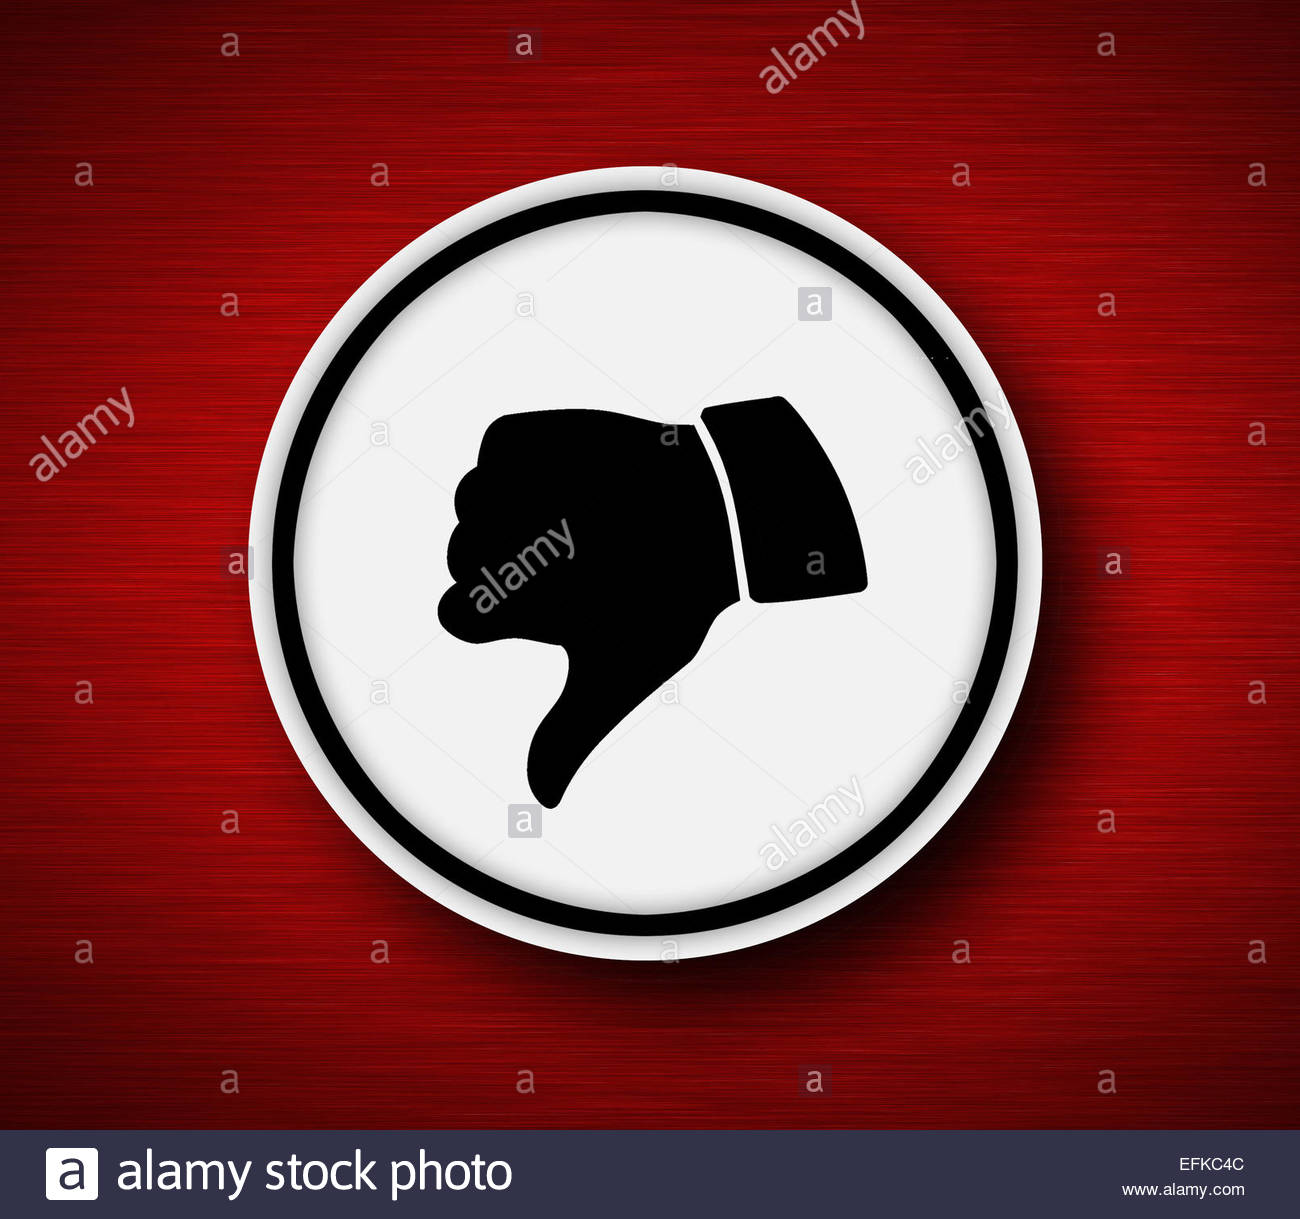 Thumb down icon with metallic background - Stock Image